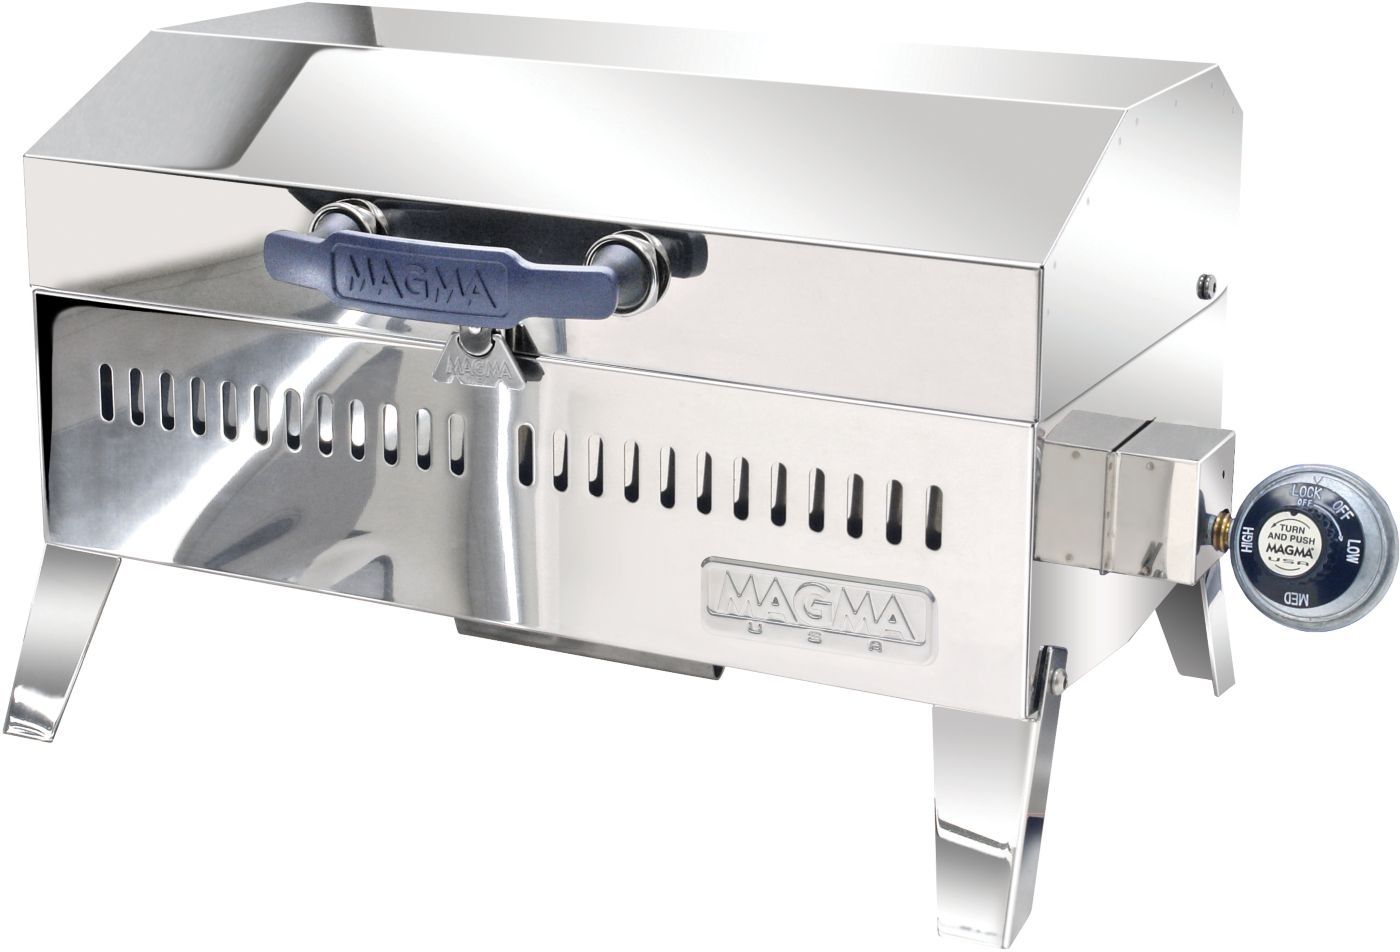 Magma Cabo Gas Boat Grill